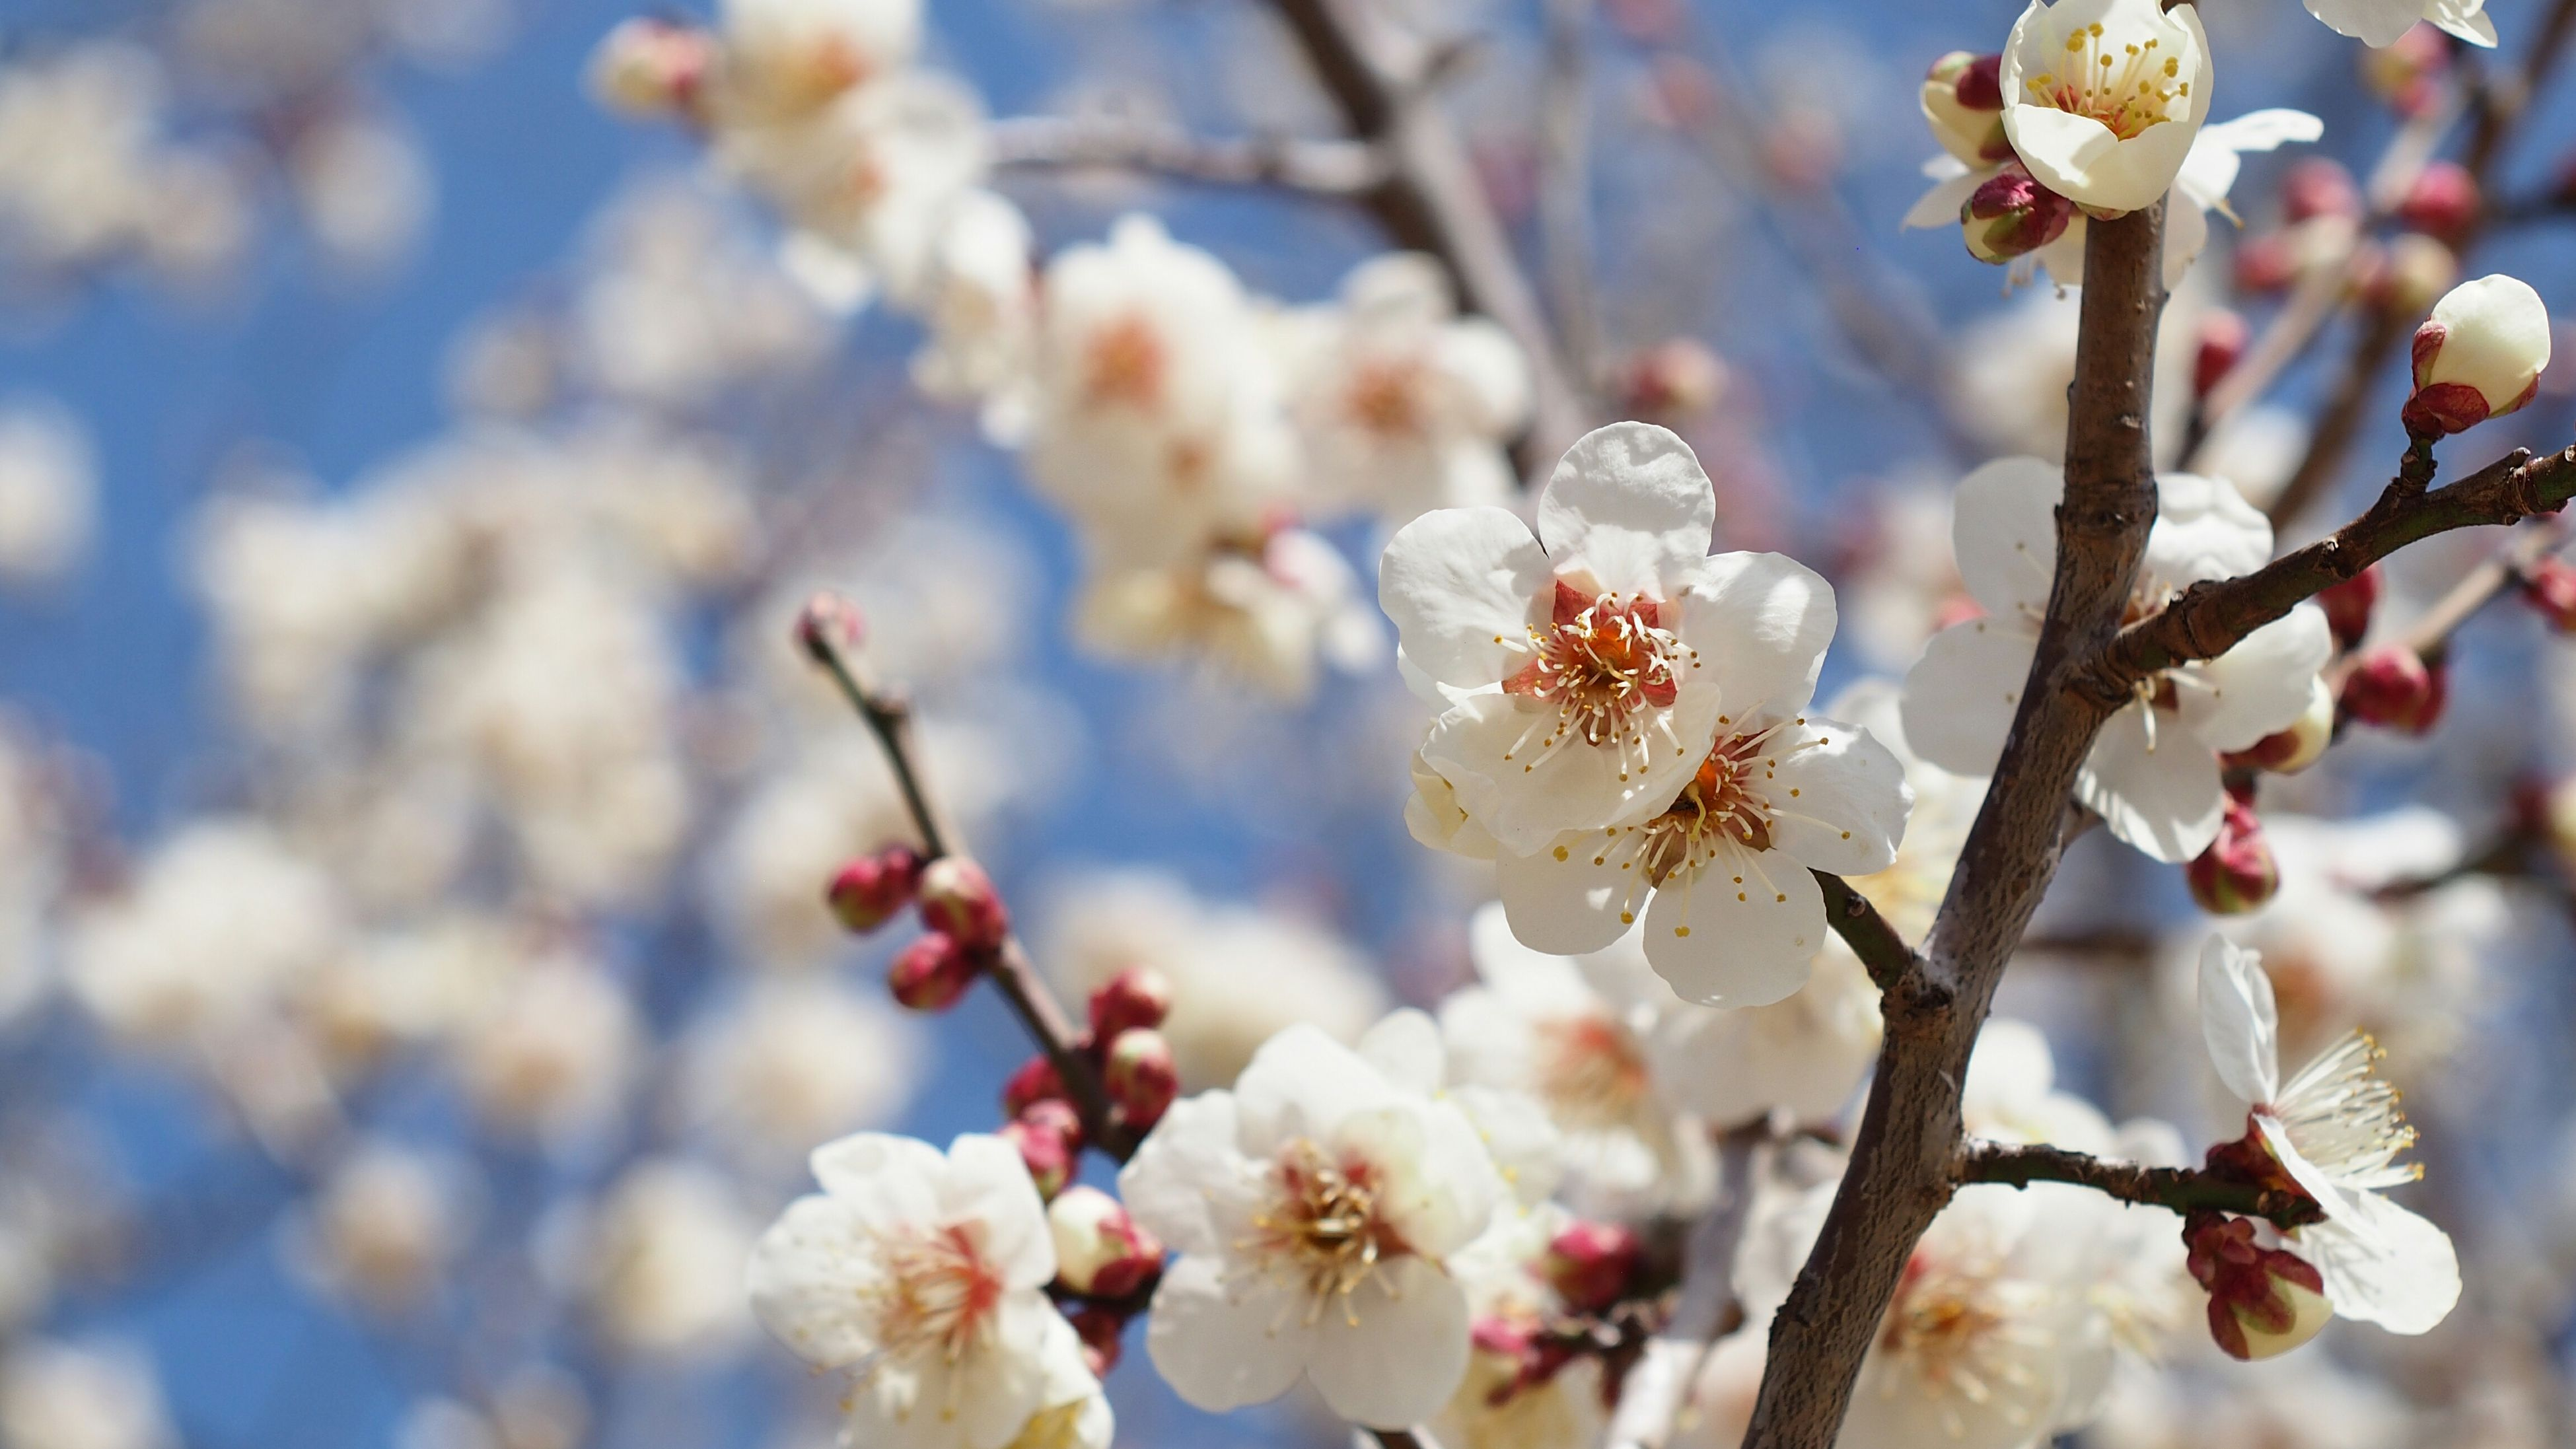 flower, branch, freshness, growth, tree, cherry blossom, fragility, focus on foreground, beauty in nature, blossom, cherry tree, nature, twig, close-up, springtime, in bloom, fruit tree, low angle view, petal, blooming